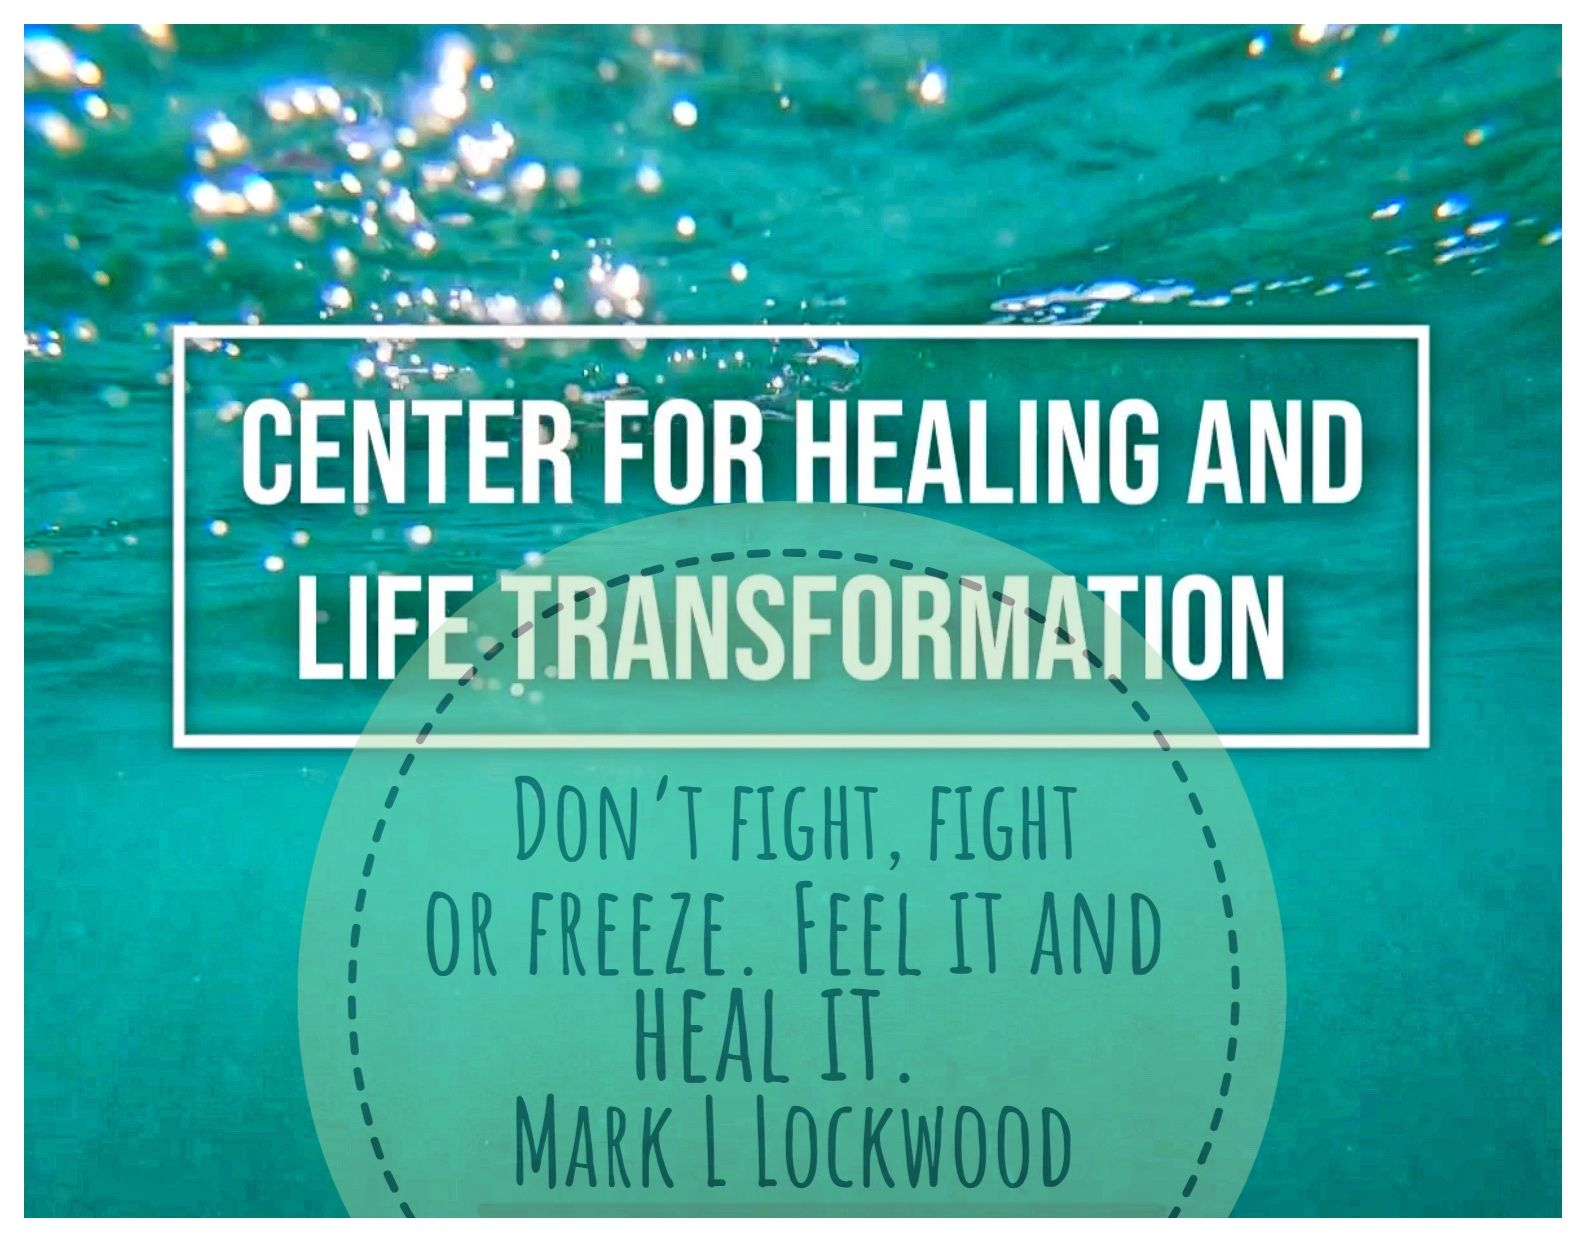 Pin On Center For Healing And Life Transformation